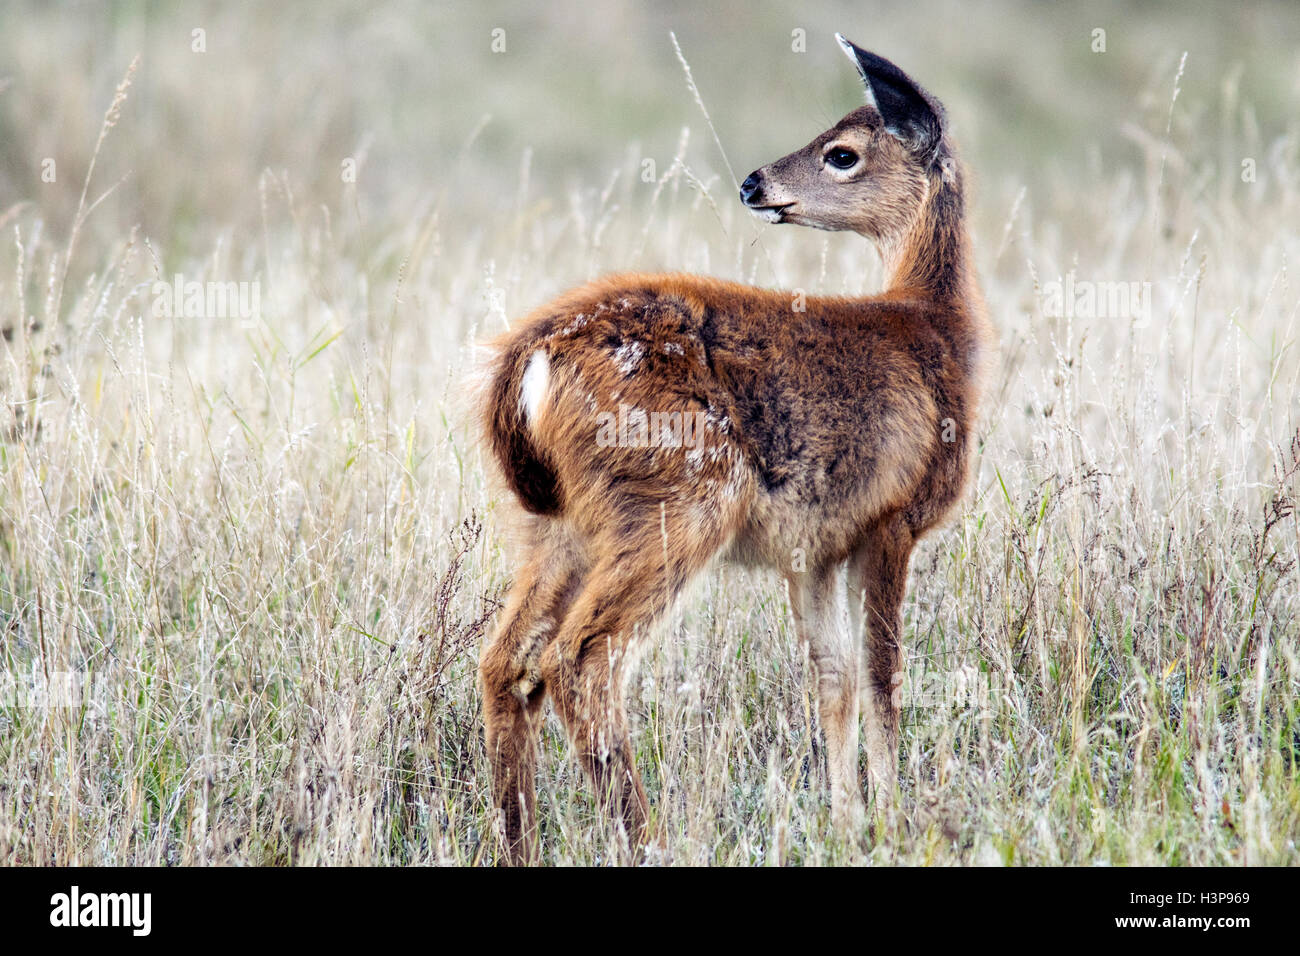 Black-tailed Deer - Rathtrevor Beach Provincial Park - Parksville, Vancouver Island, British Columbia, Canada - Stock Image